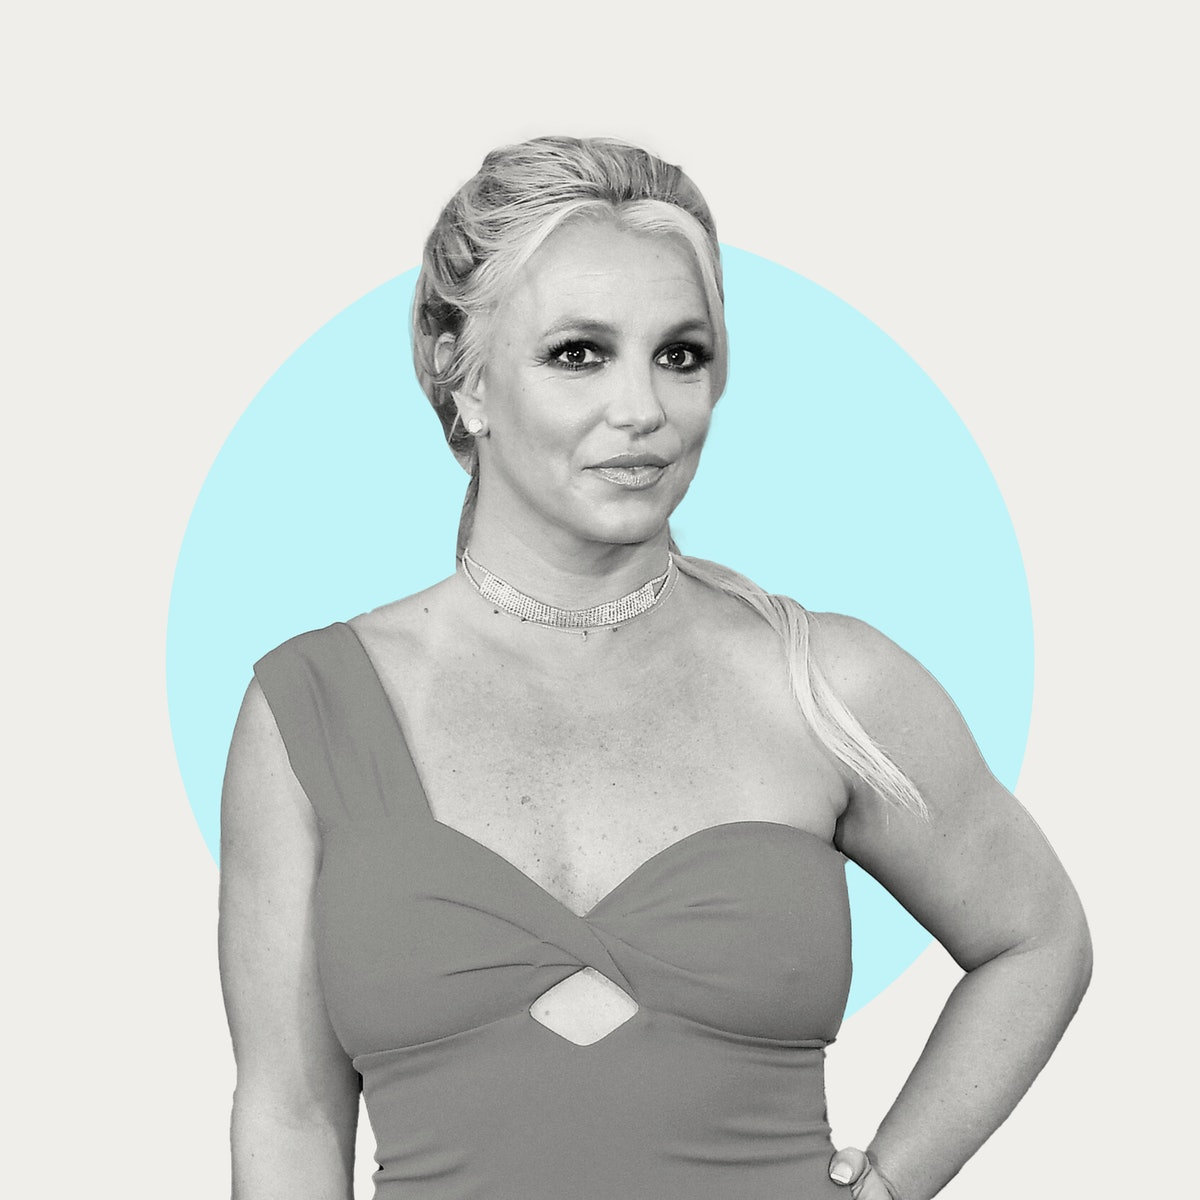 Britney Spears seen posing for the camera, in black and white on a blue background